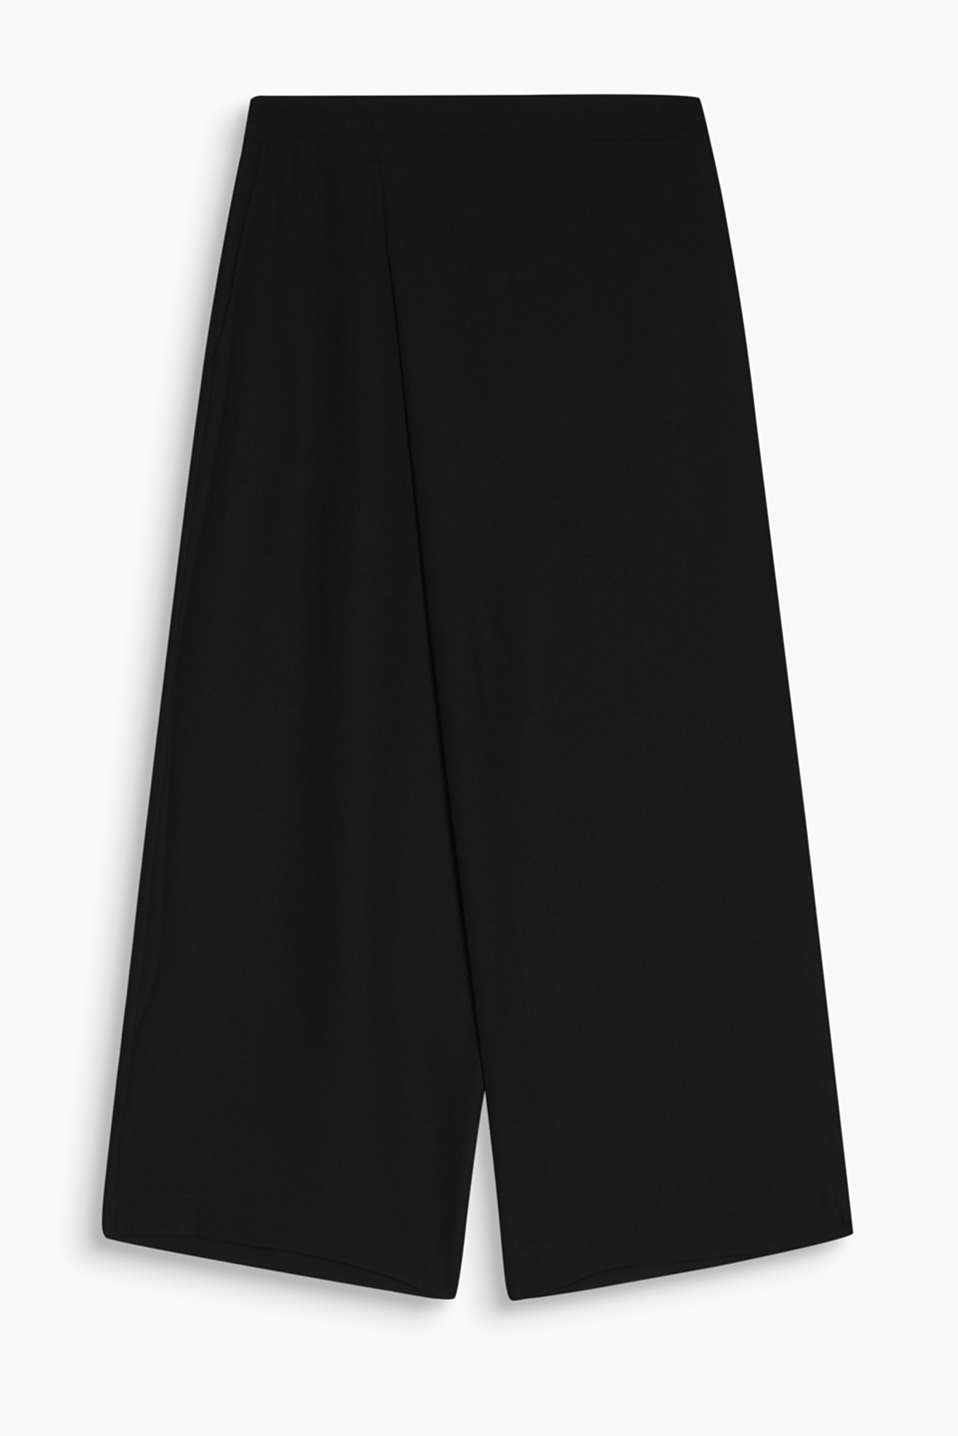 A wonderful fashion piece, not just for travelling: culottes in crease-resistant crêpe fabric in a feminine wrap-over look.